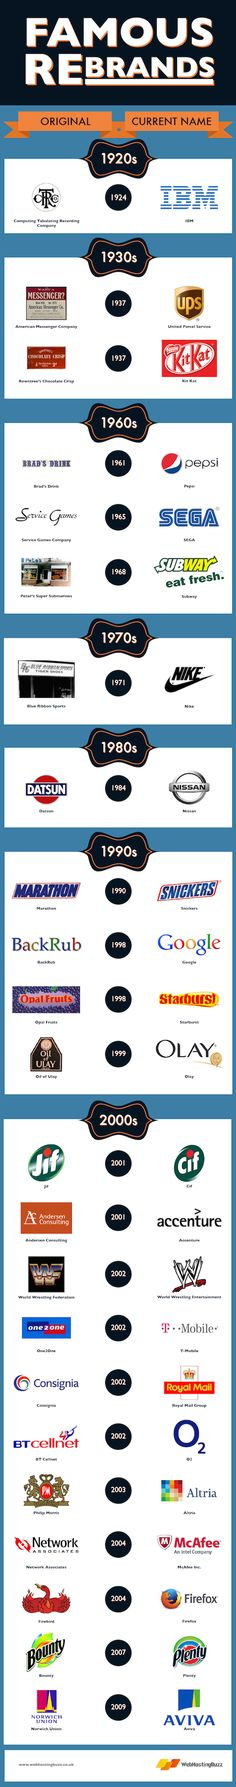 Brand New: The History of Branding - Design today